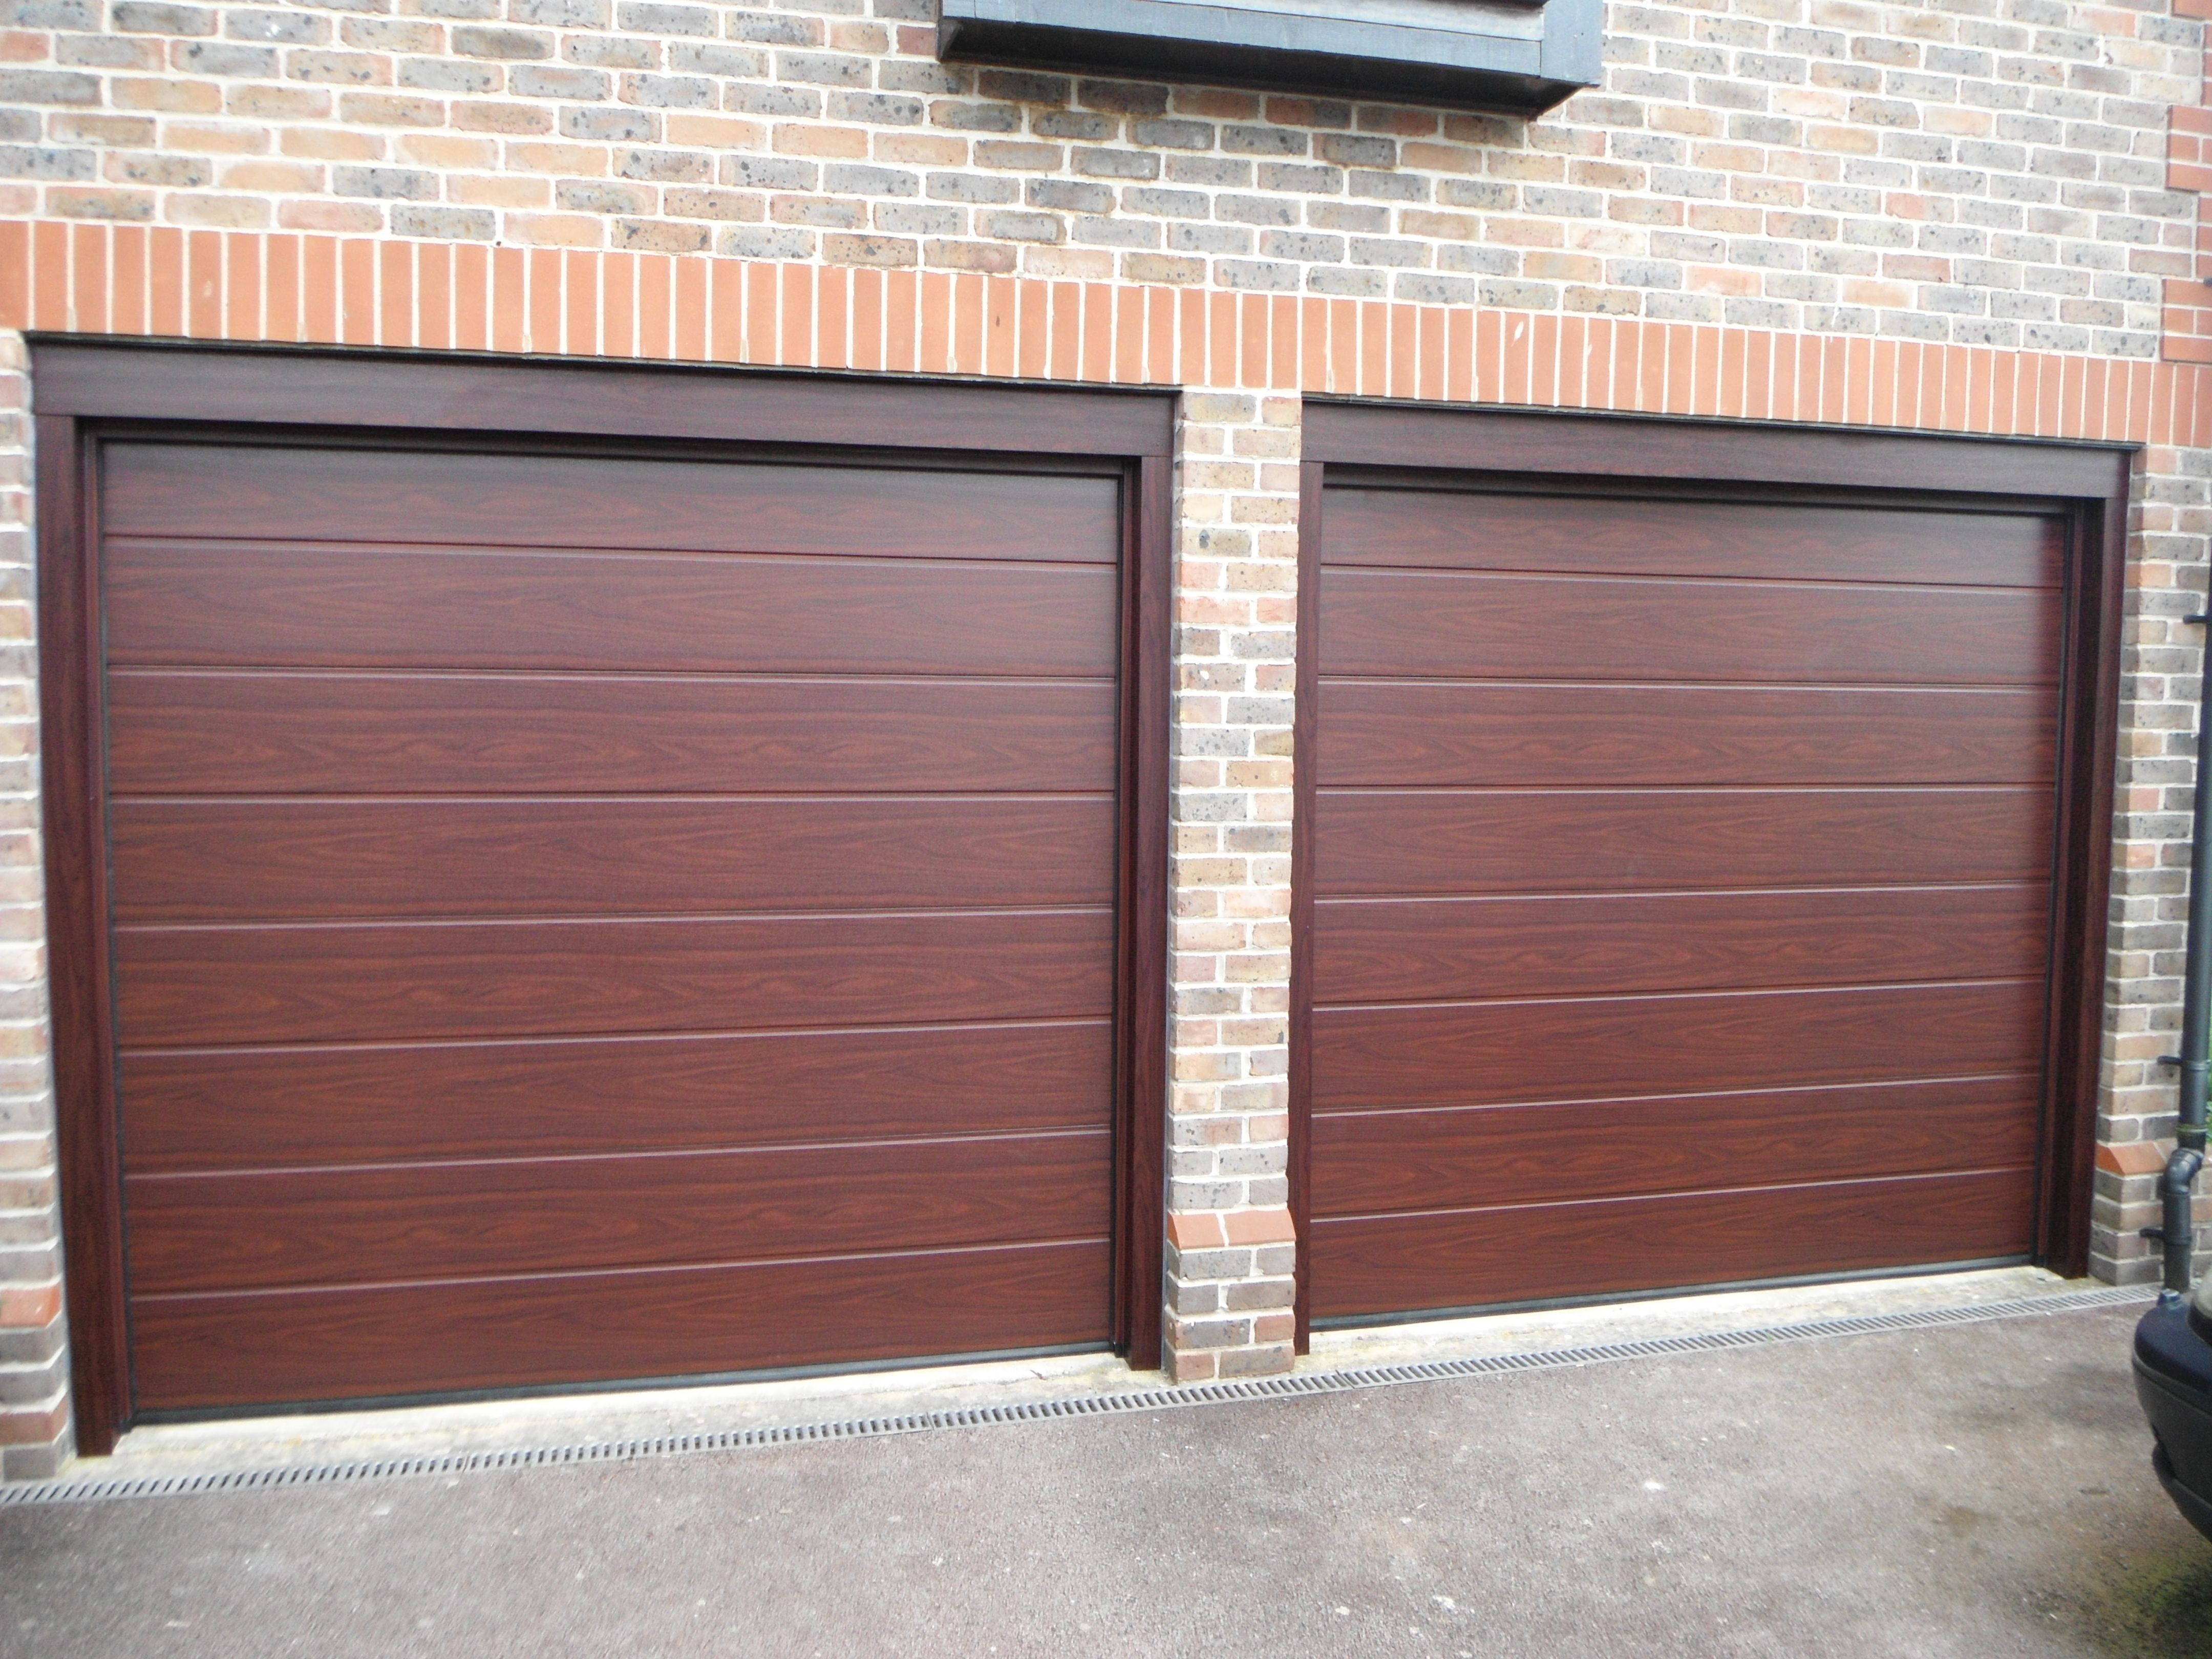 Hormann m ribbed decograin rosewood sectional garage doors hormann m ribbed decograin rosewood sectional garage doors rubansaba